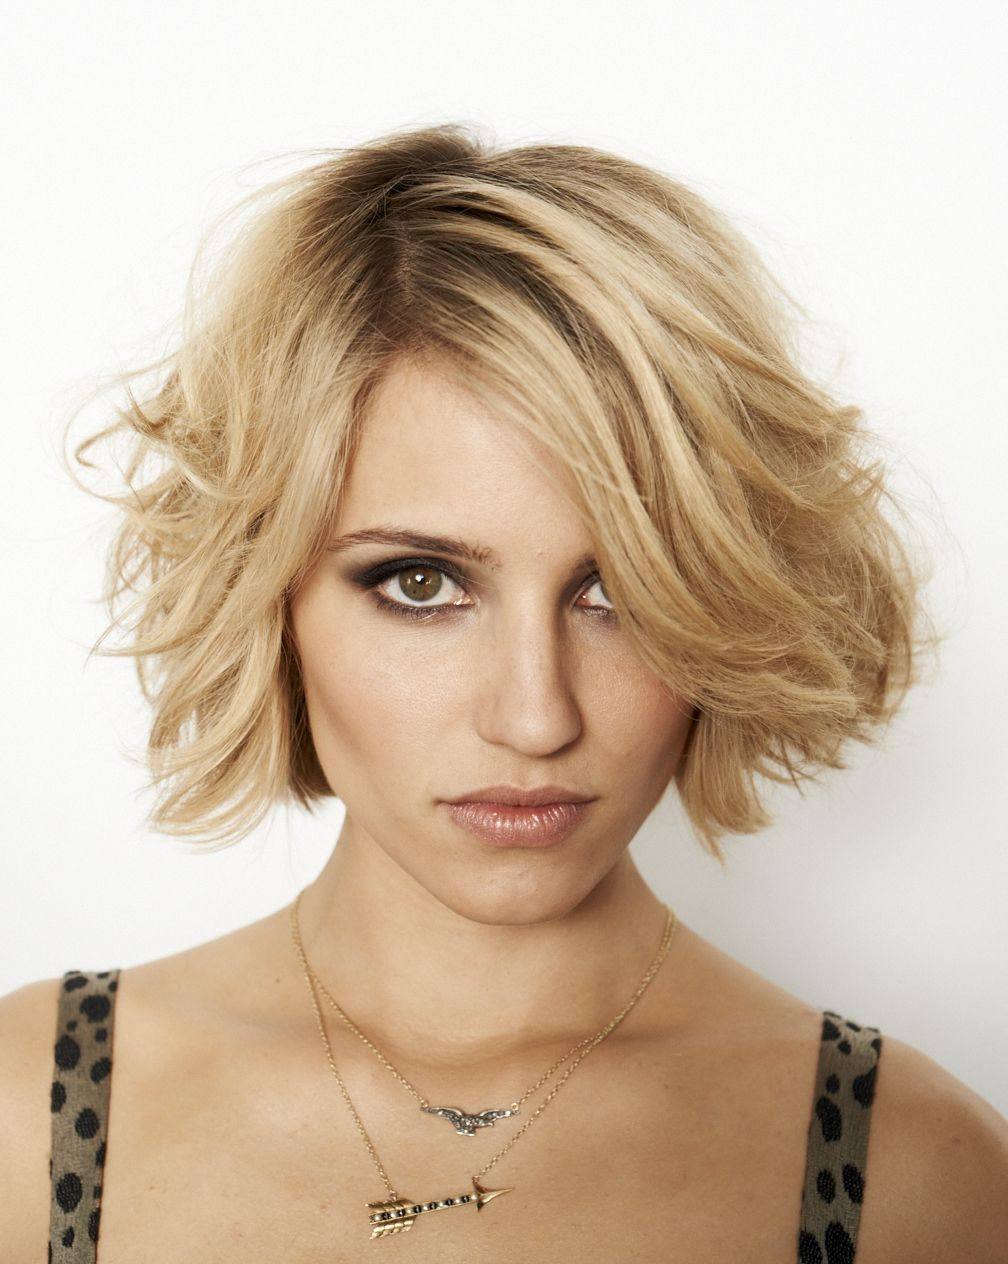 Download this Dianna Agron Cosmopolitan picture